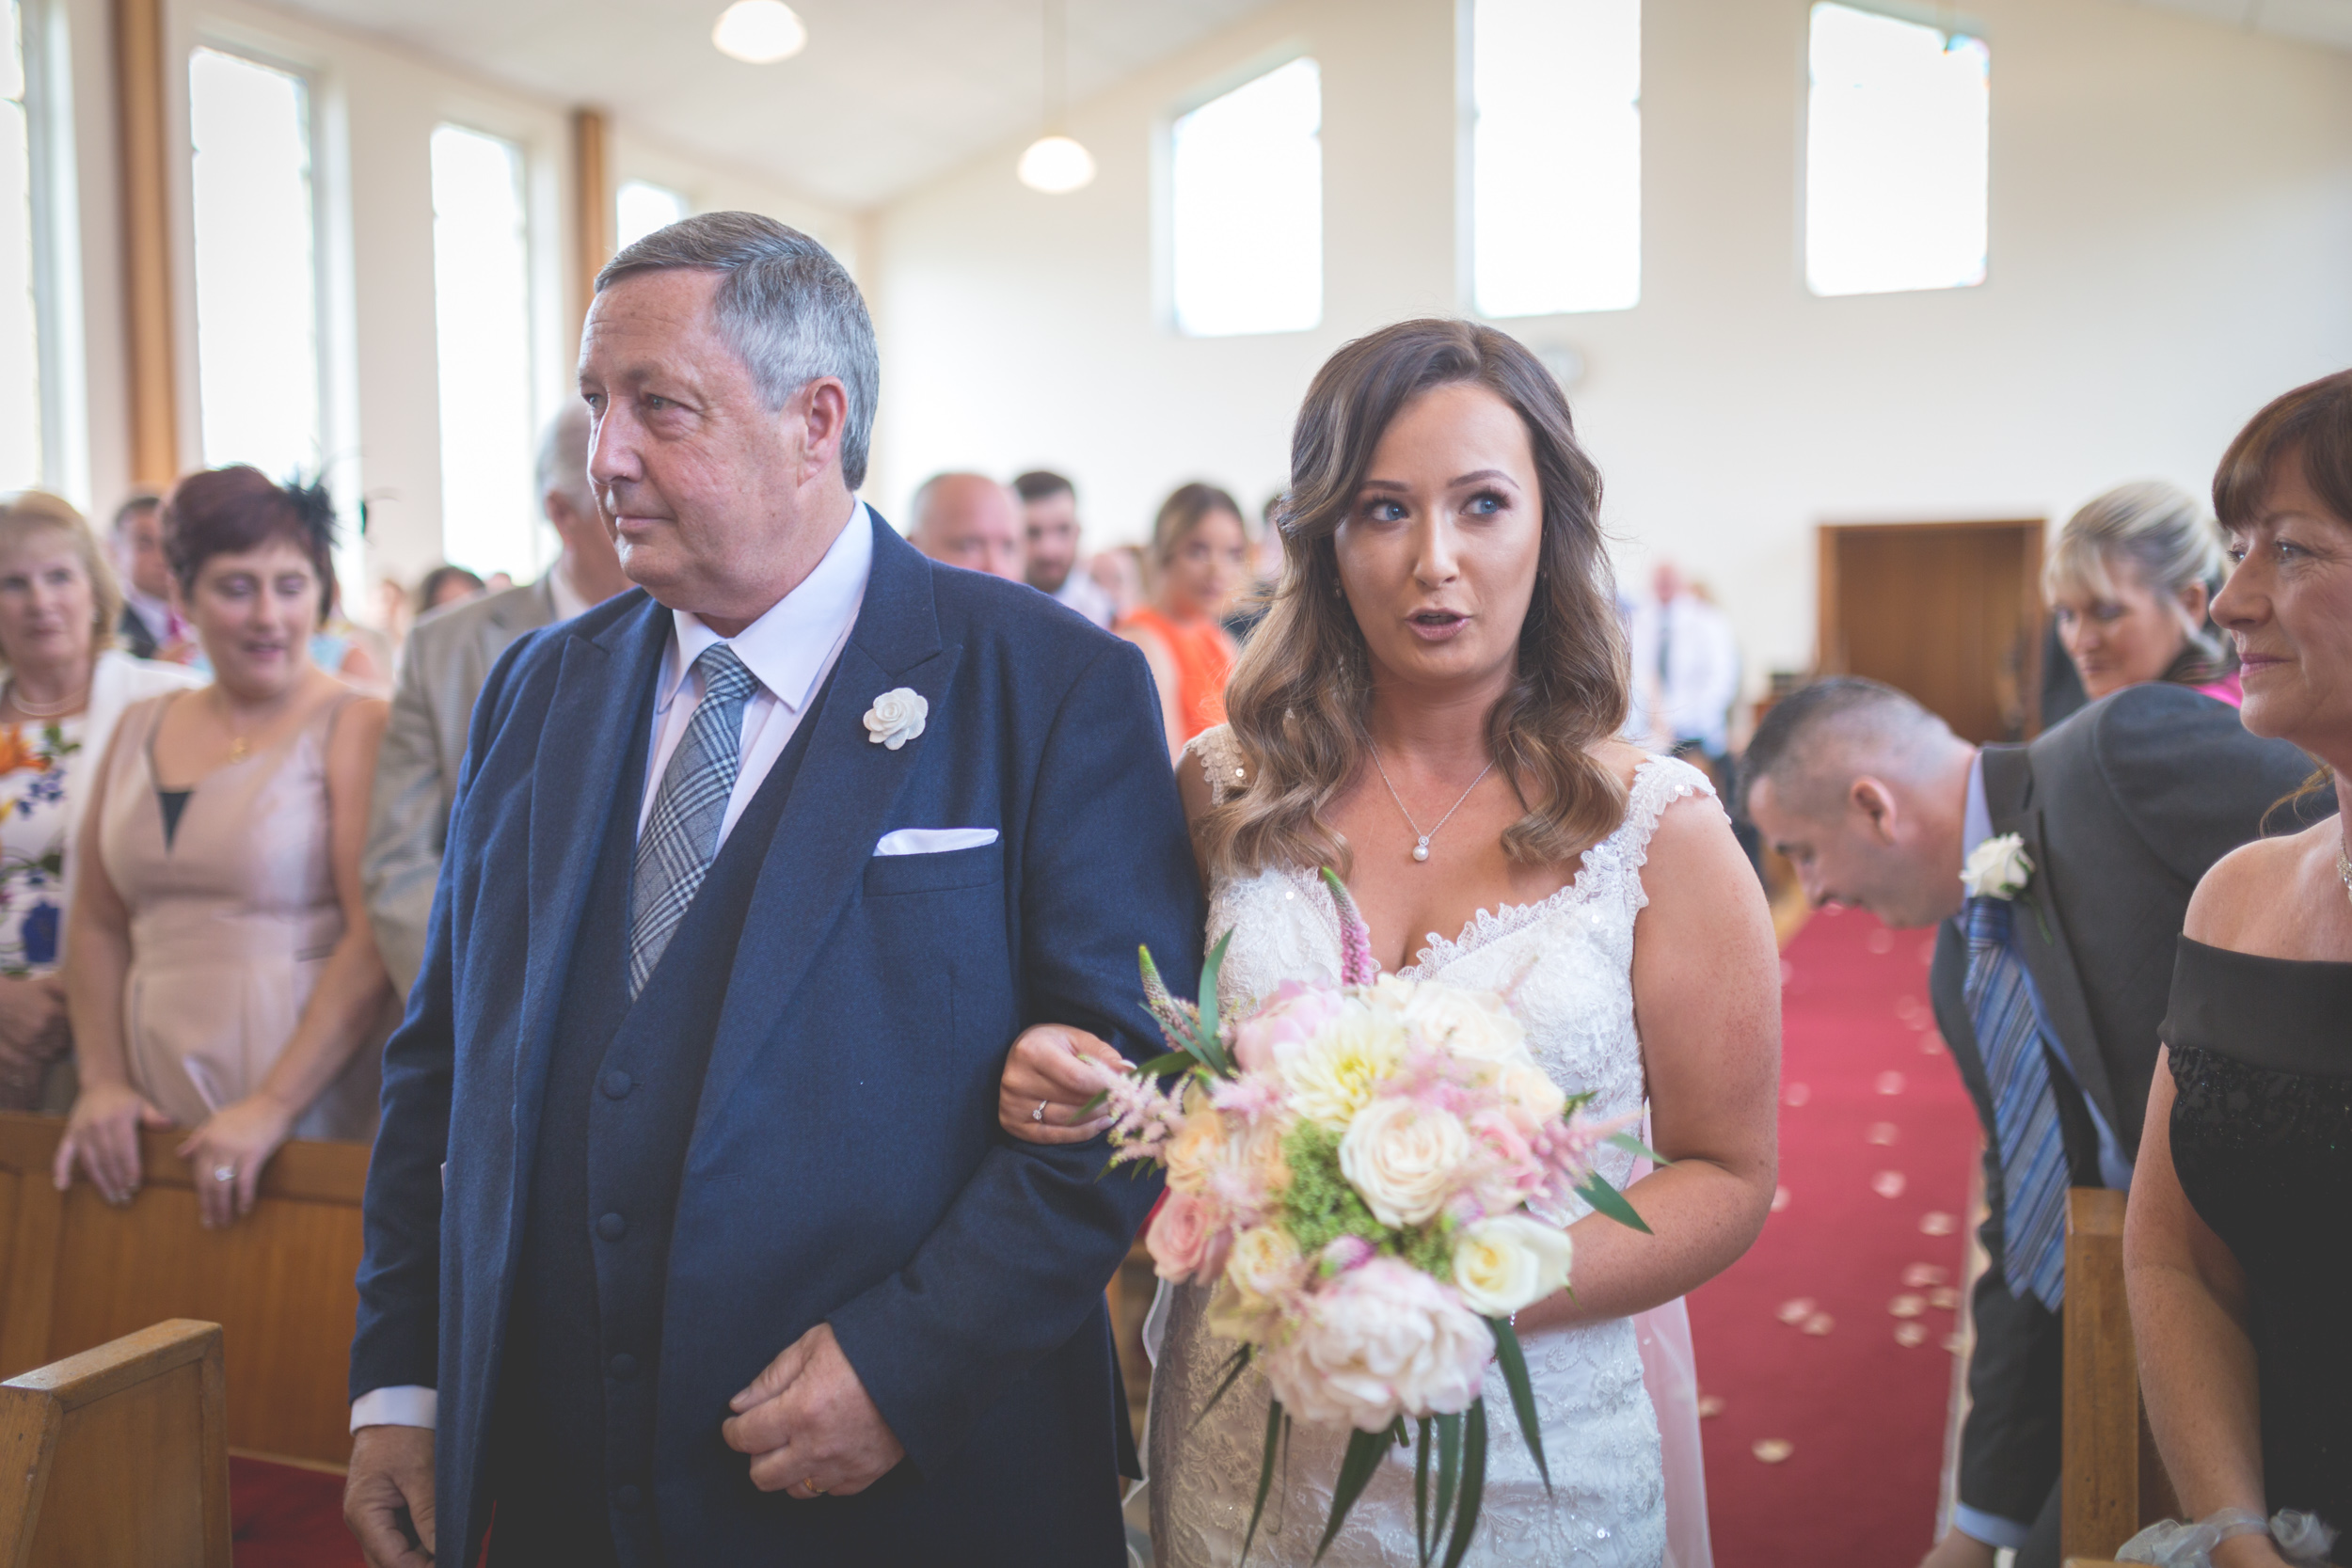 Brian McEwan | Northern Ireland Wedding Photographer | Rebecca & Michael | Ceremony-21.jpg